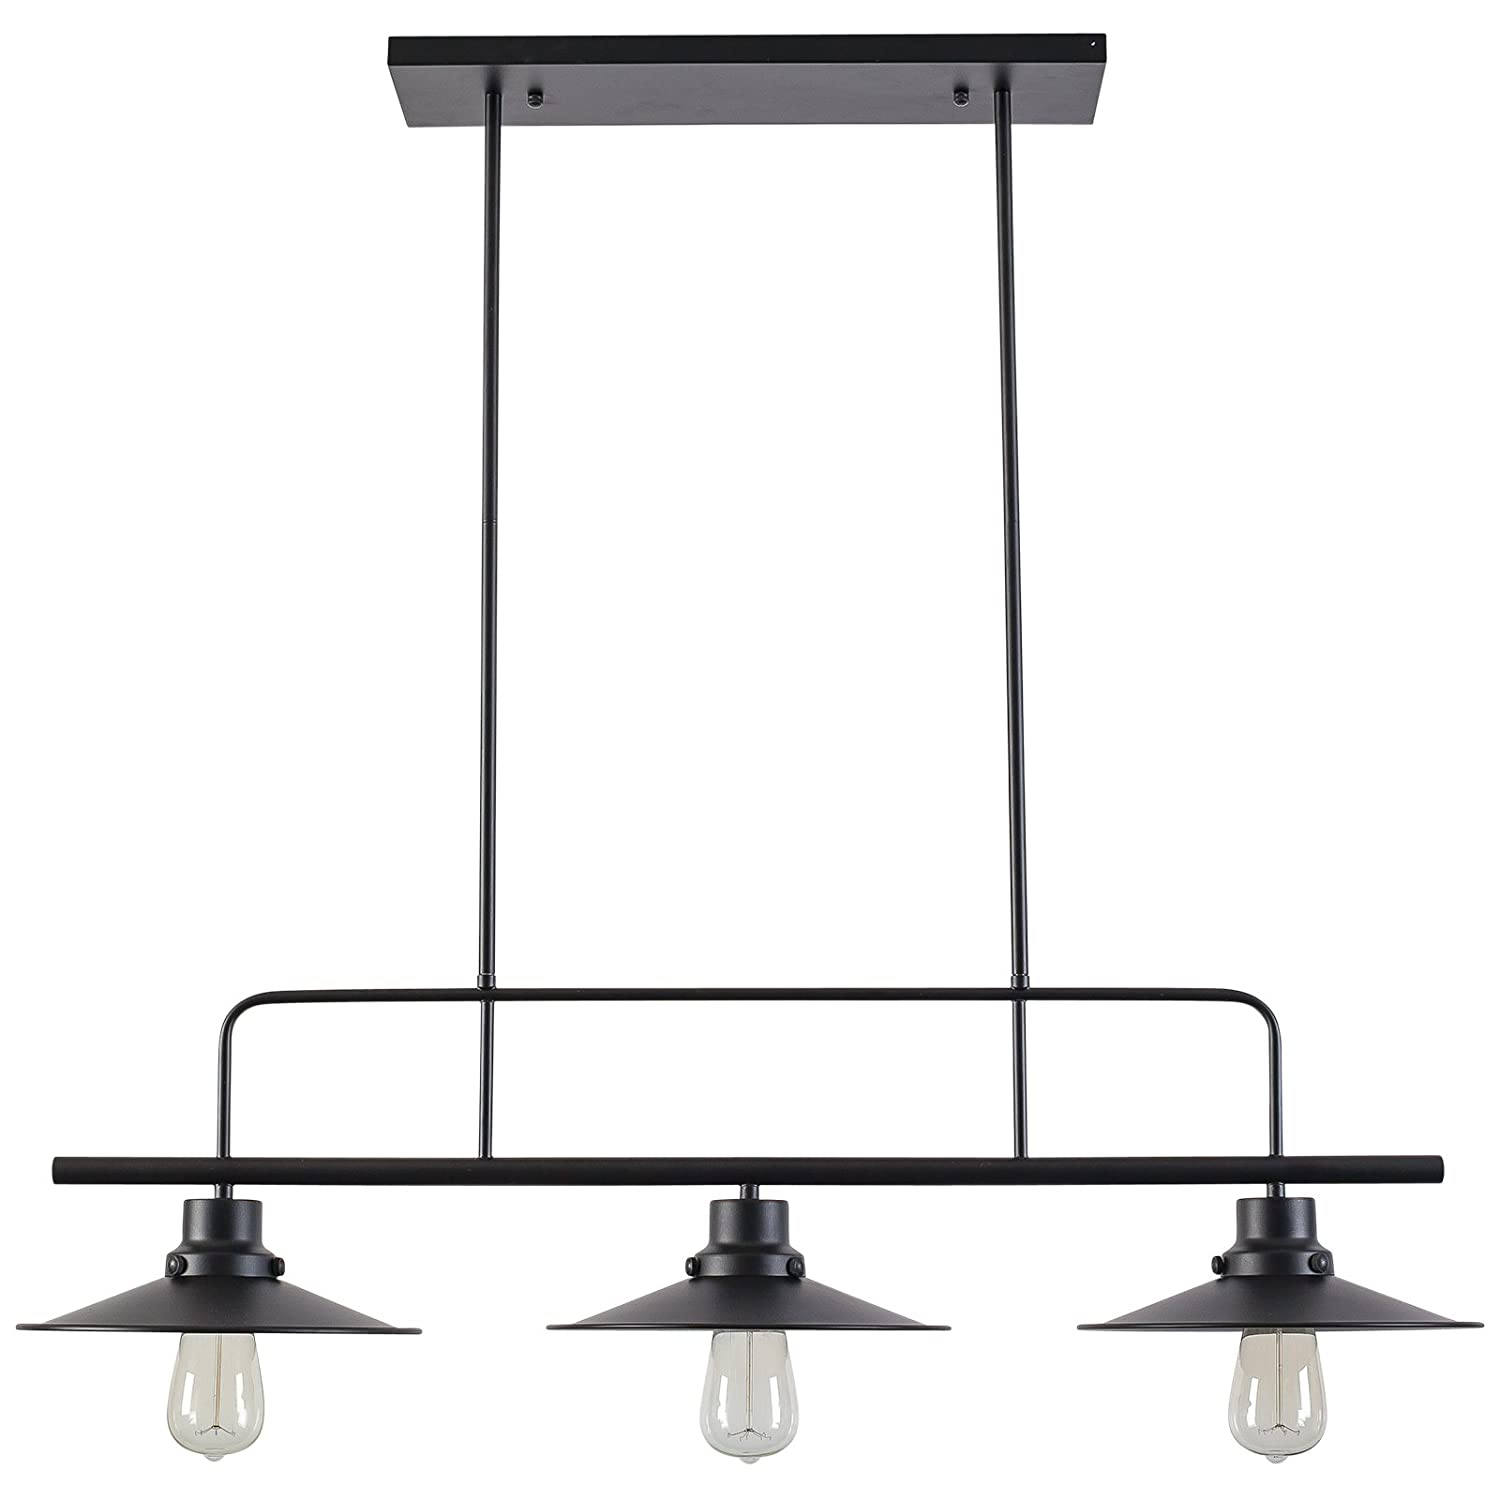 Light Society LS C114 Margaux Island Pendant Lamp Black